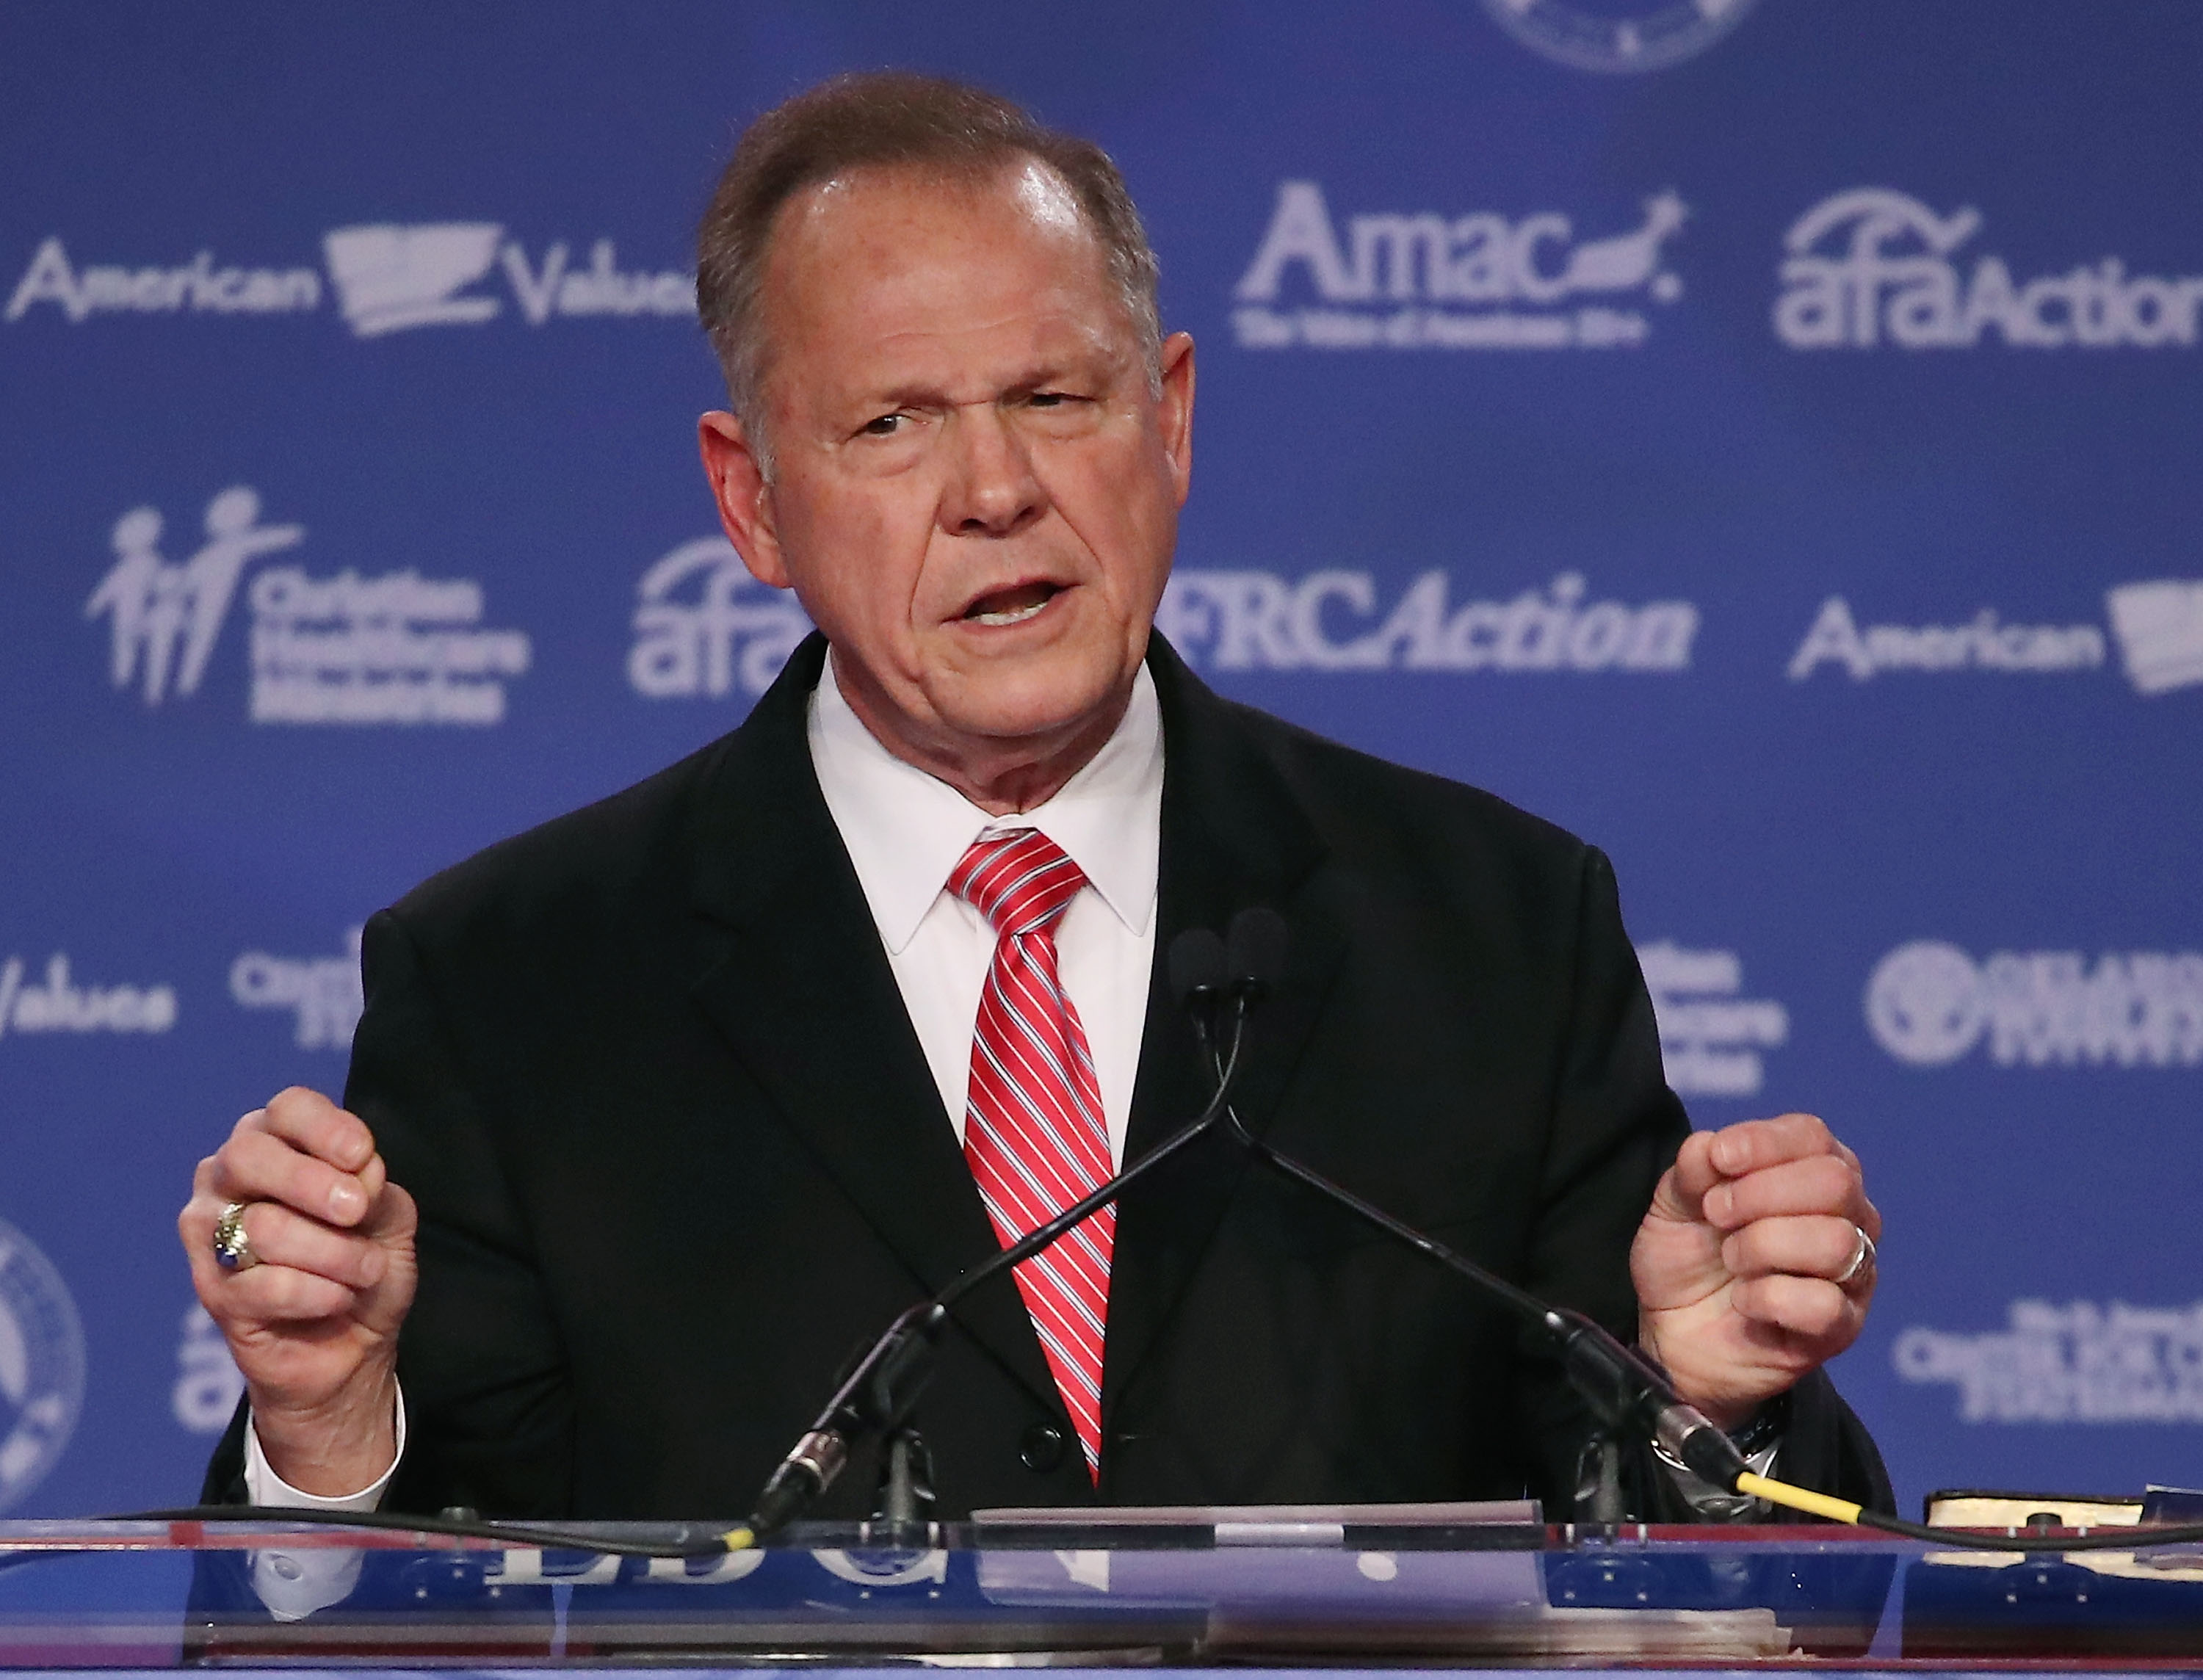 Roy Moore, GOP Senate candidate and former chief justice on the Alabama Supreme Court speaks during the annual Family Research Council's Values Voter Summit at the Omni Shorham Hotel on Oct. 13, 2017 in Washington, D.C.